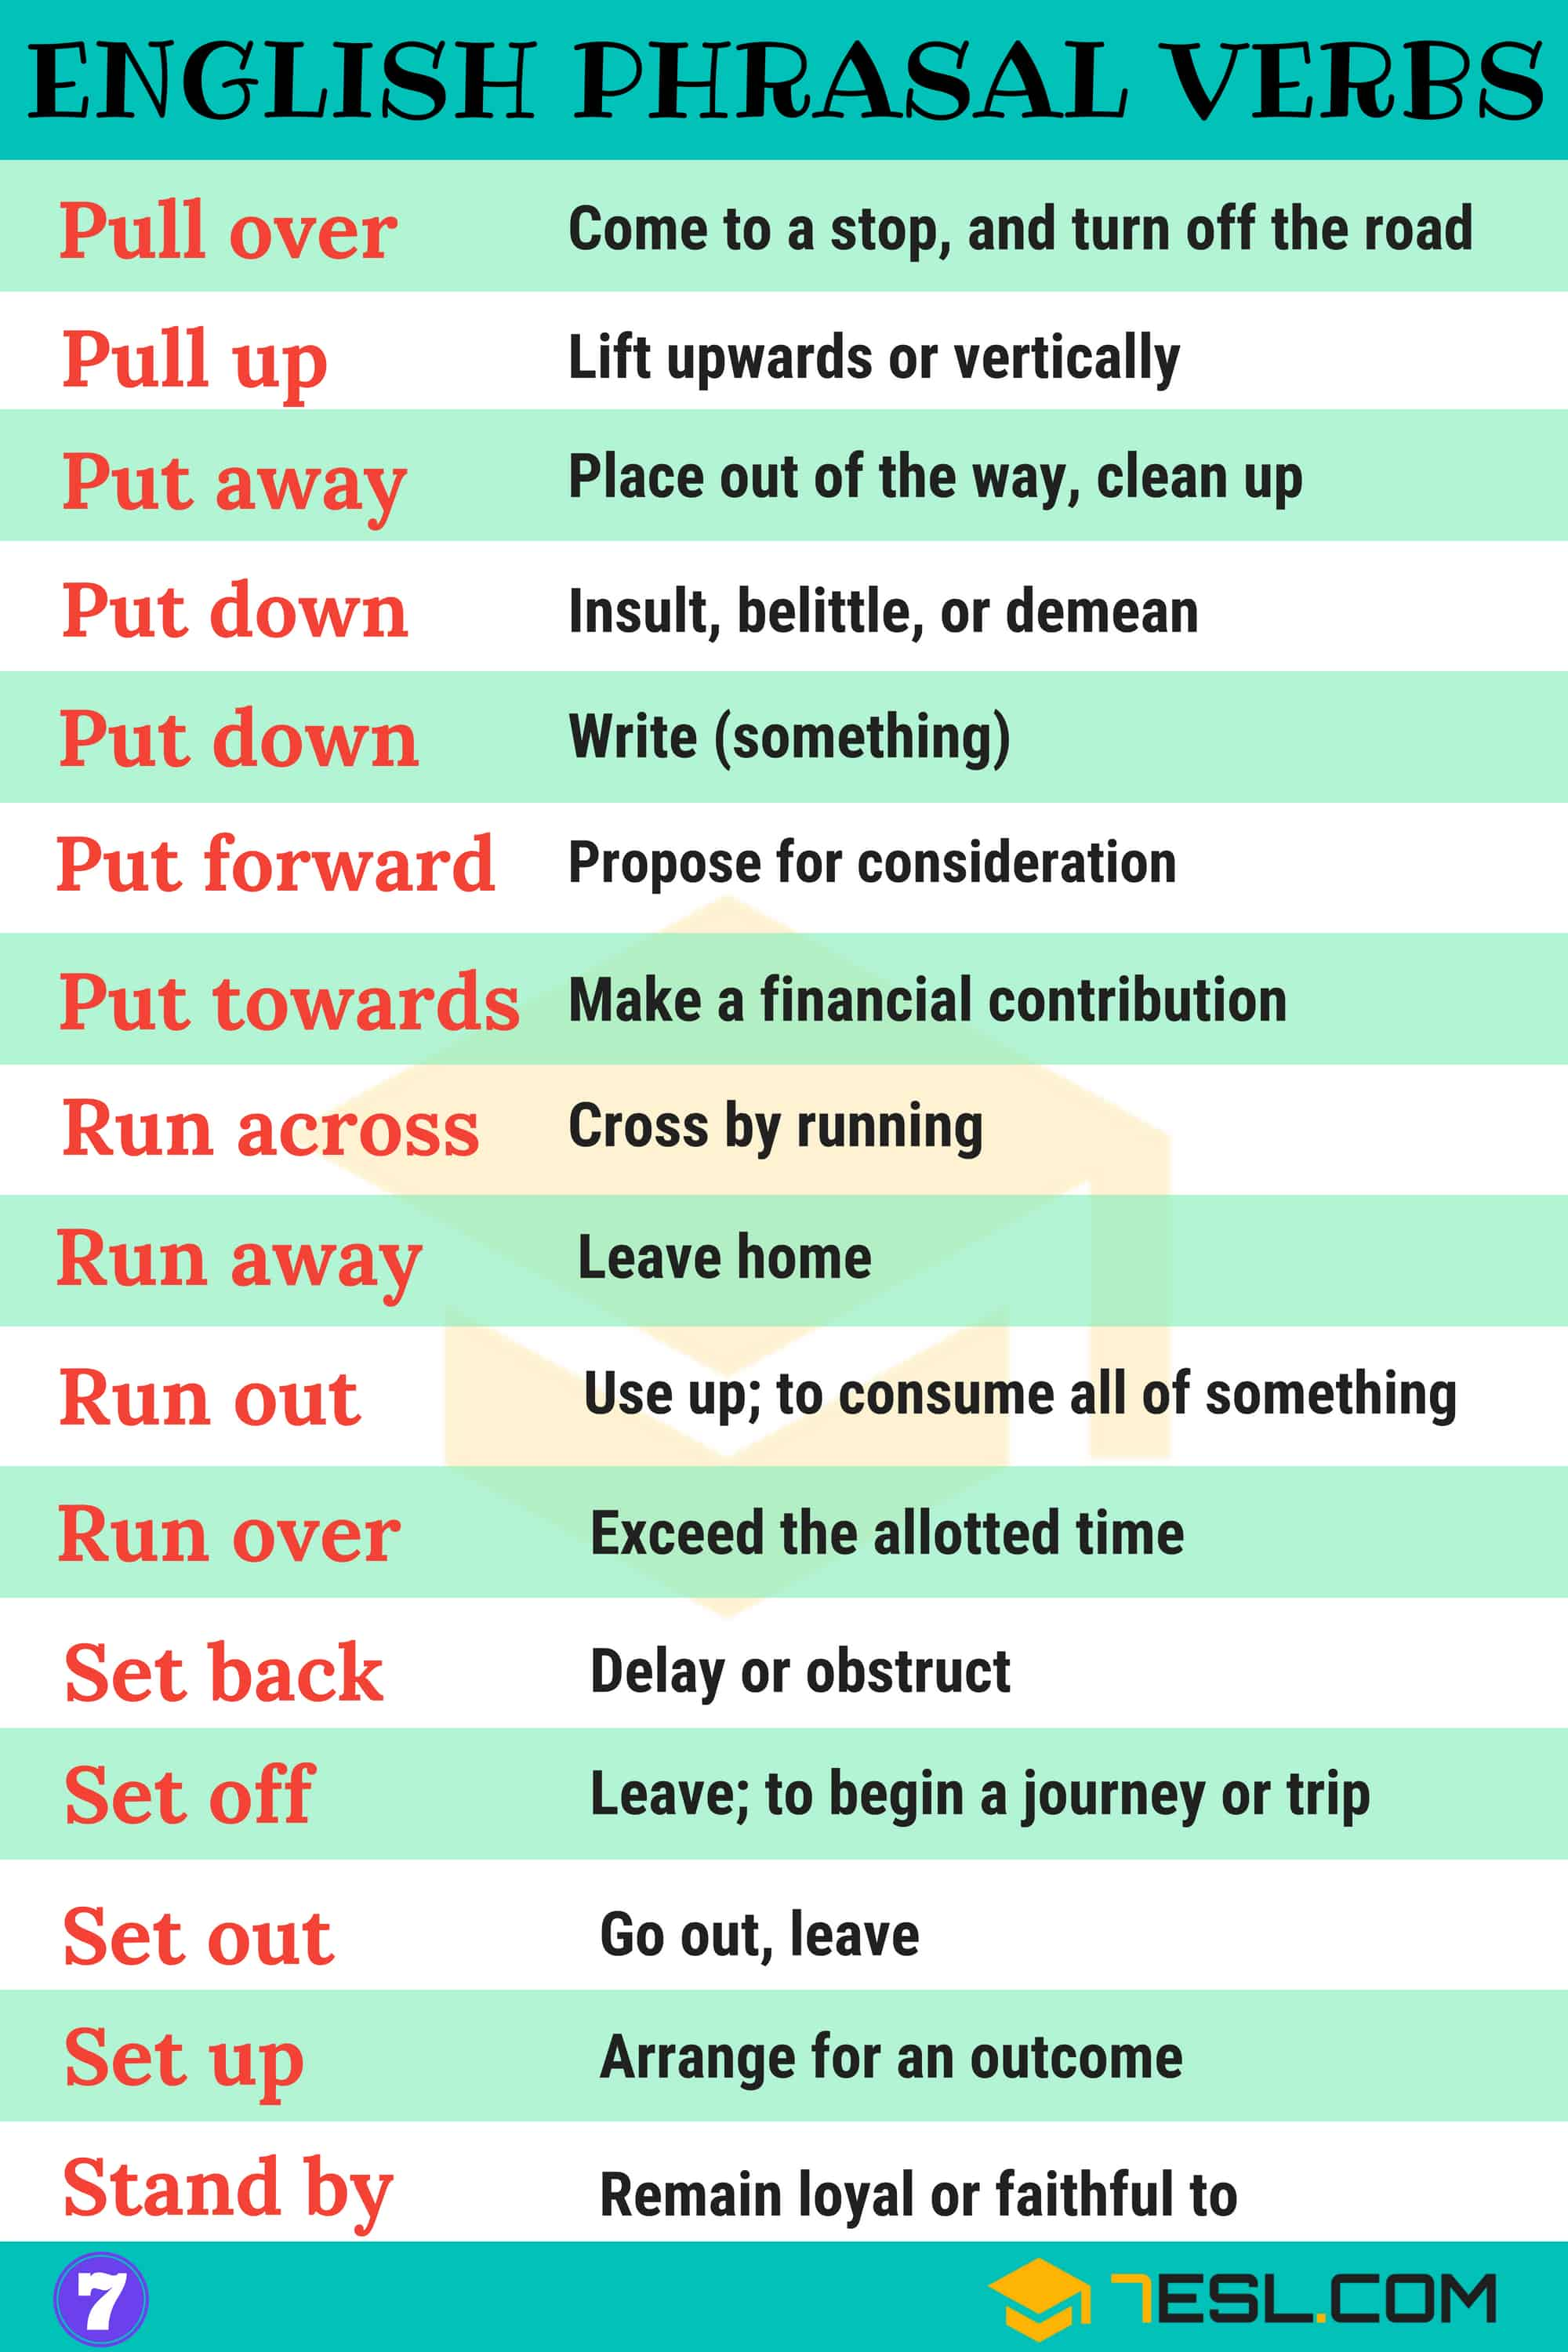 Commonly Used English Phrasal Verbs List | Image 7